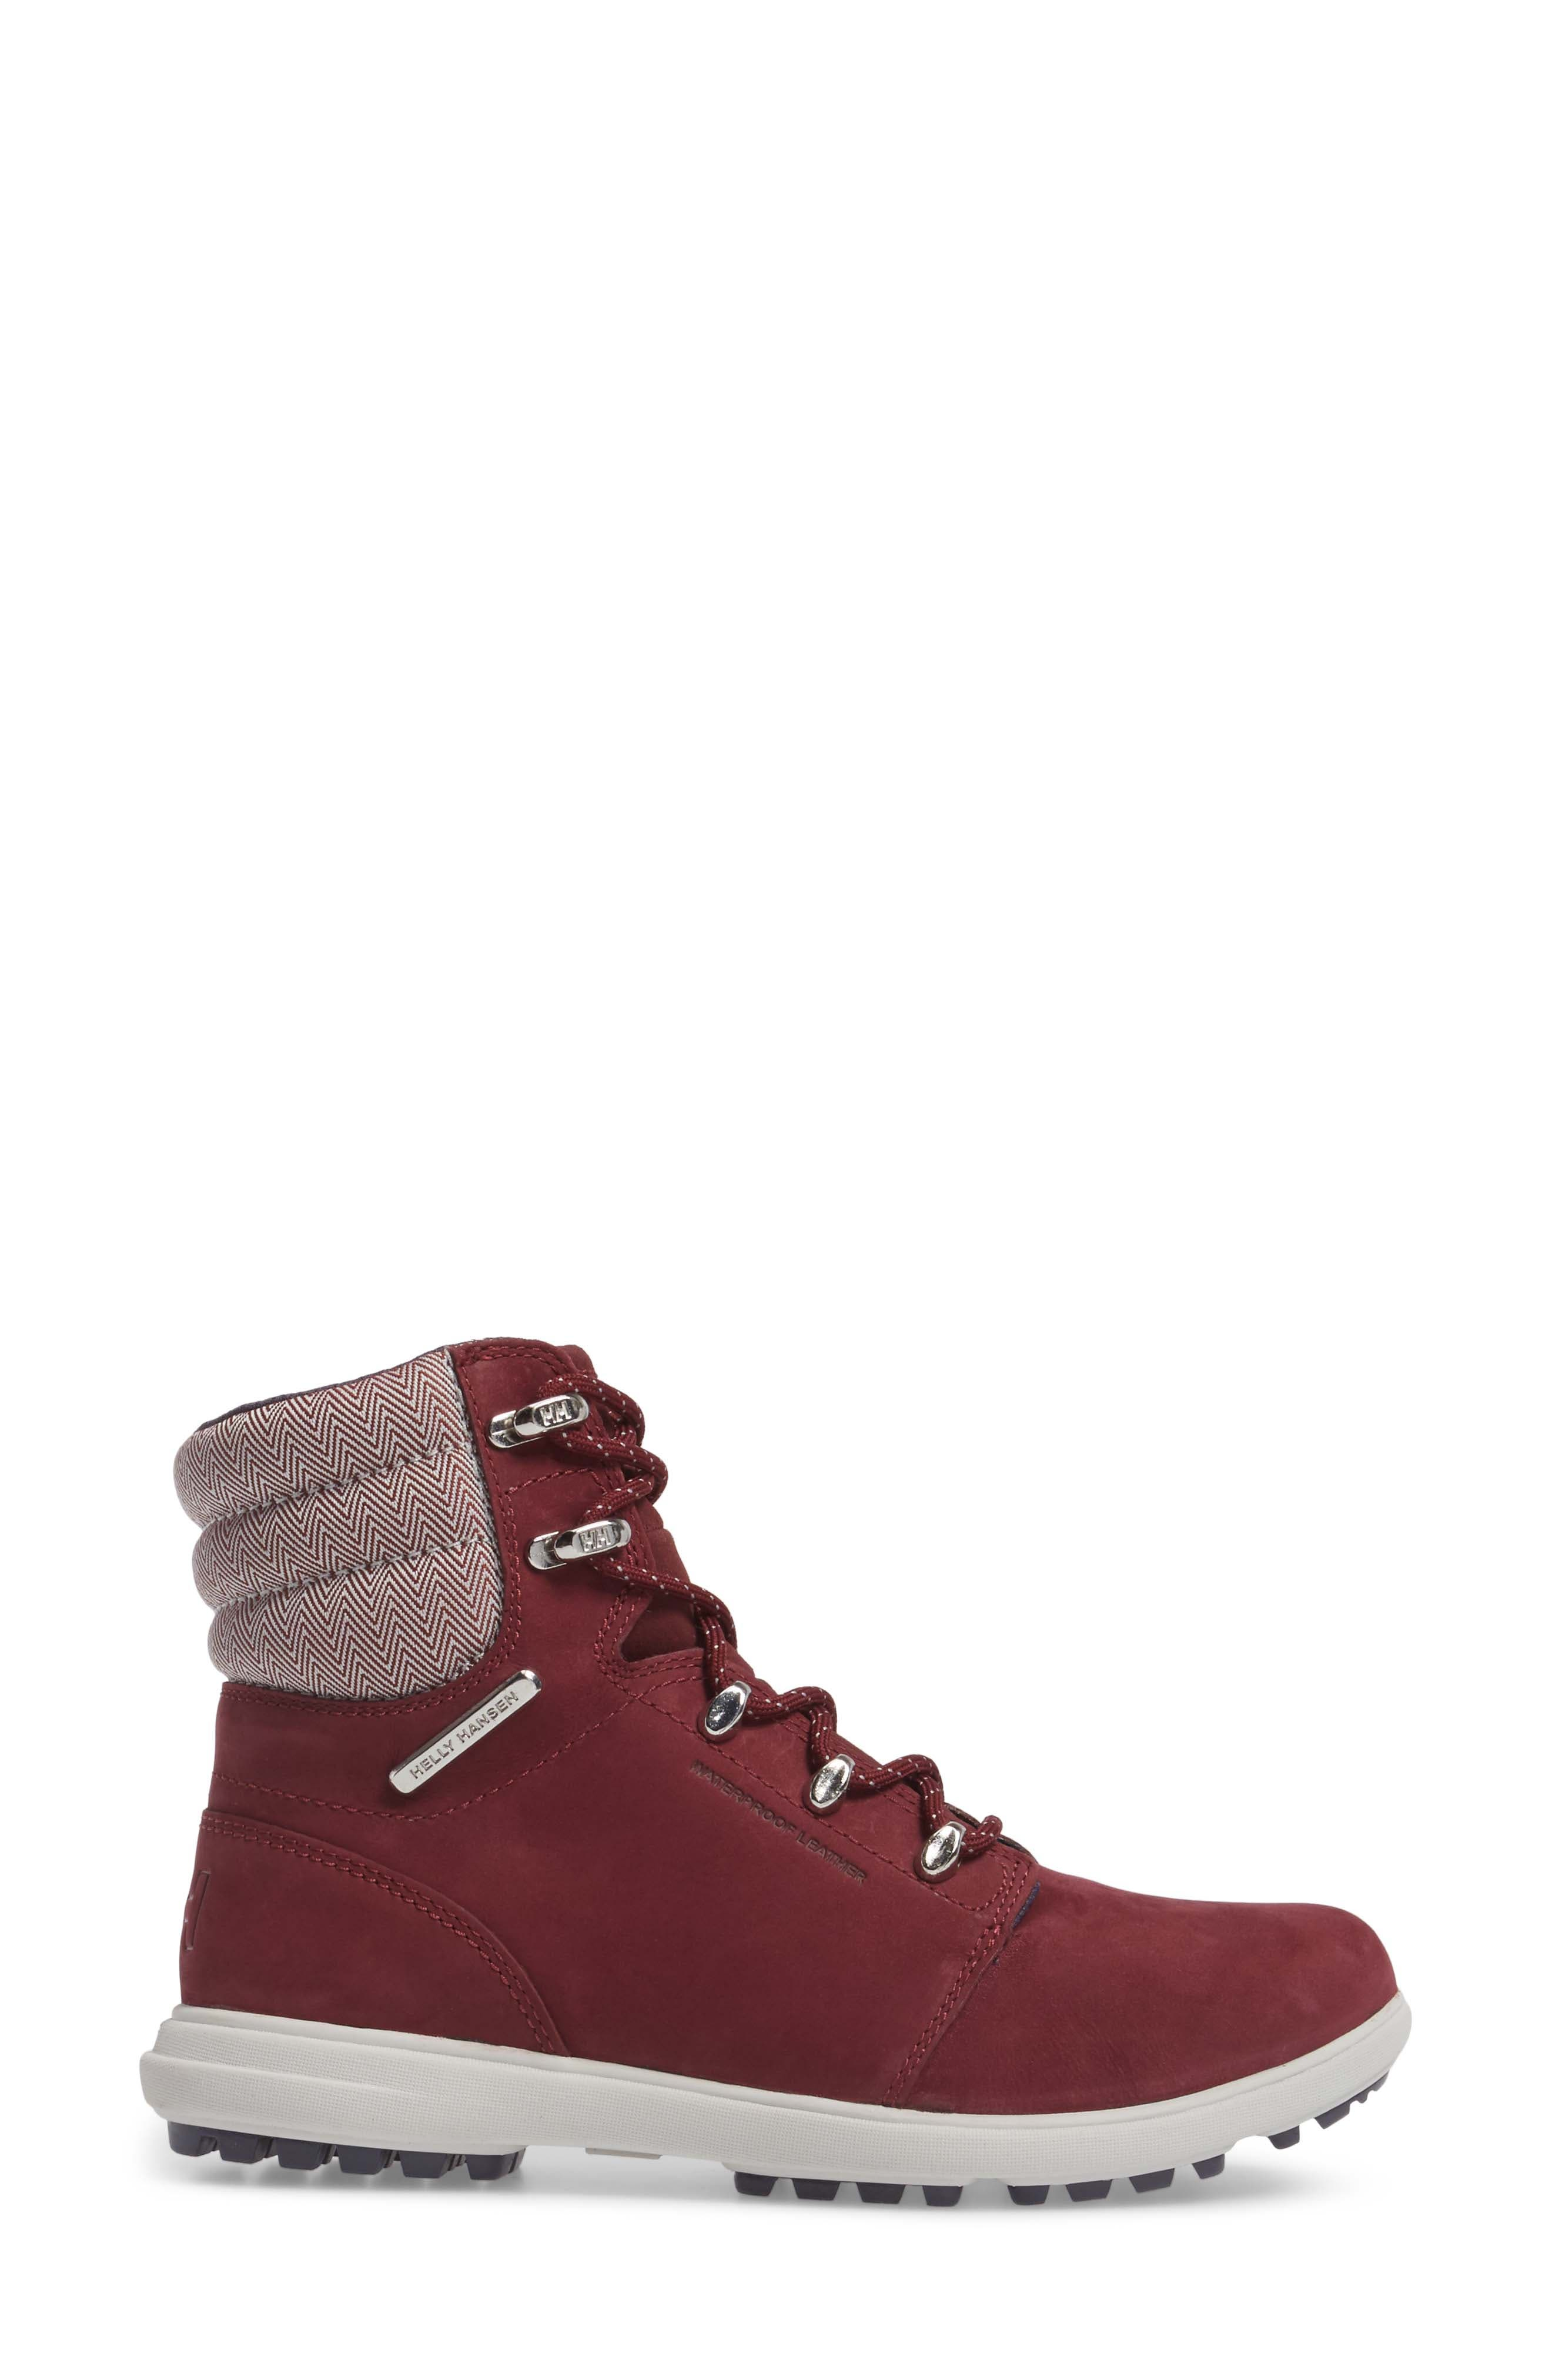 'W.A.S.T 2' Waterproof Hiker Boot,                             Alternate thumbnail 3, color,                             Port / Ash Grey / Graphite